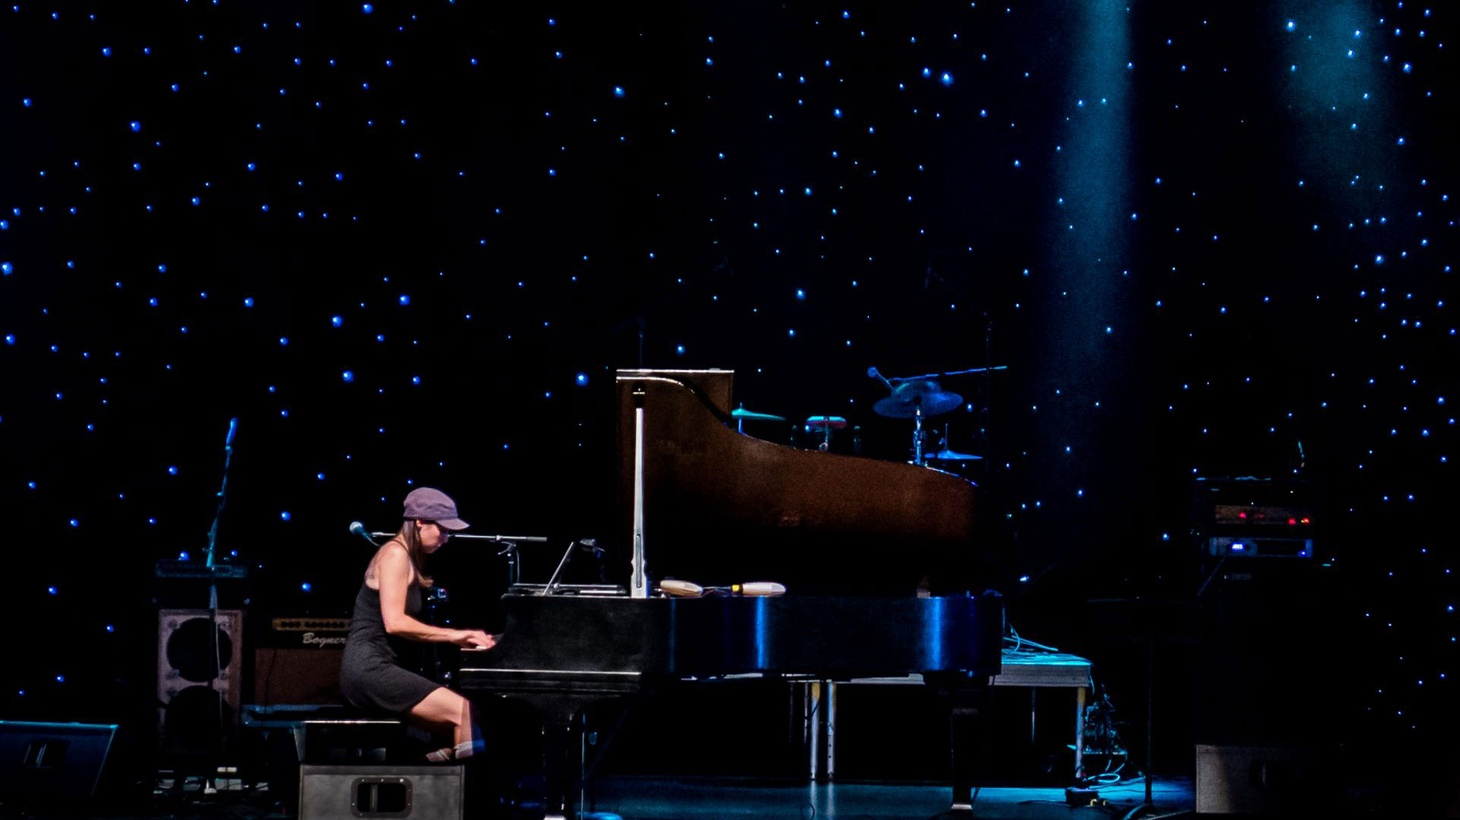 Classically trained pianist Holly Bowling has spent the last few years re-imagining the music of two legendary bands: the Grateful Dead and Phish. She spoke with KCRW's Larry Perel before her show in Santa Barbara.